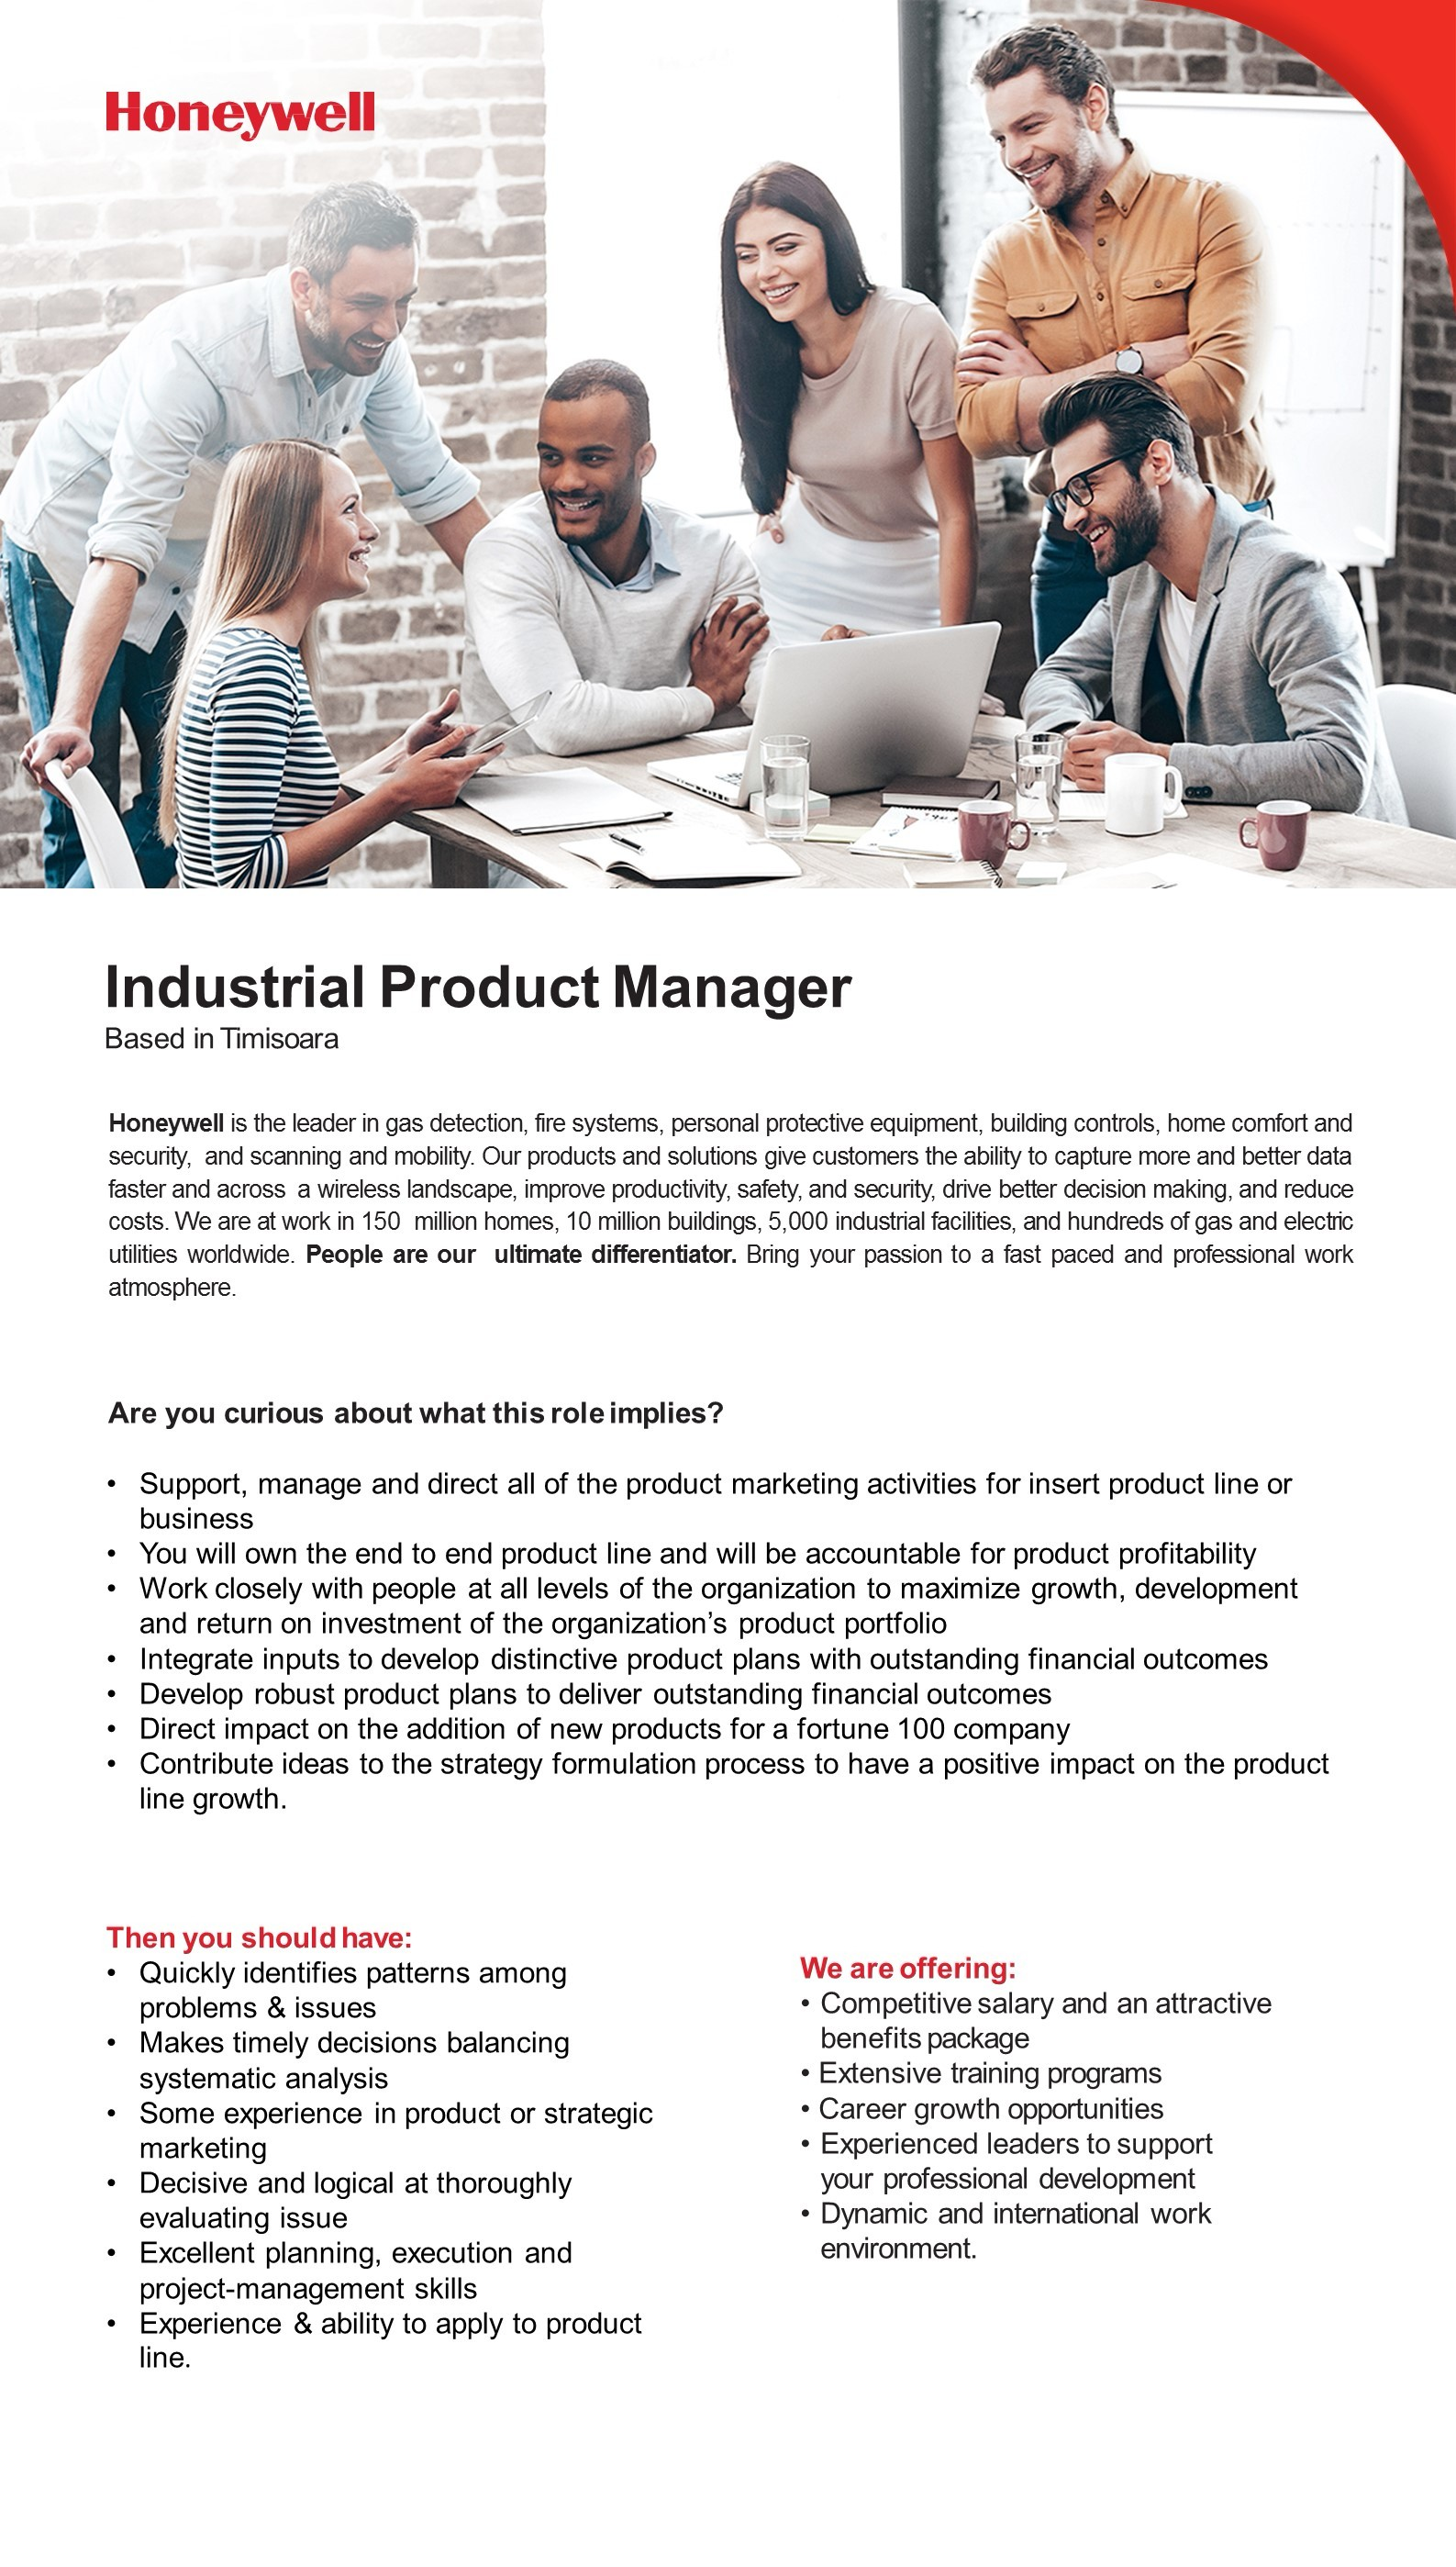 Industrial Product Manager